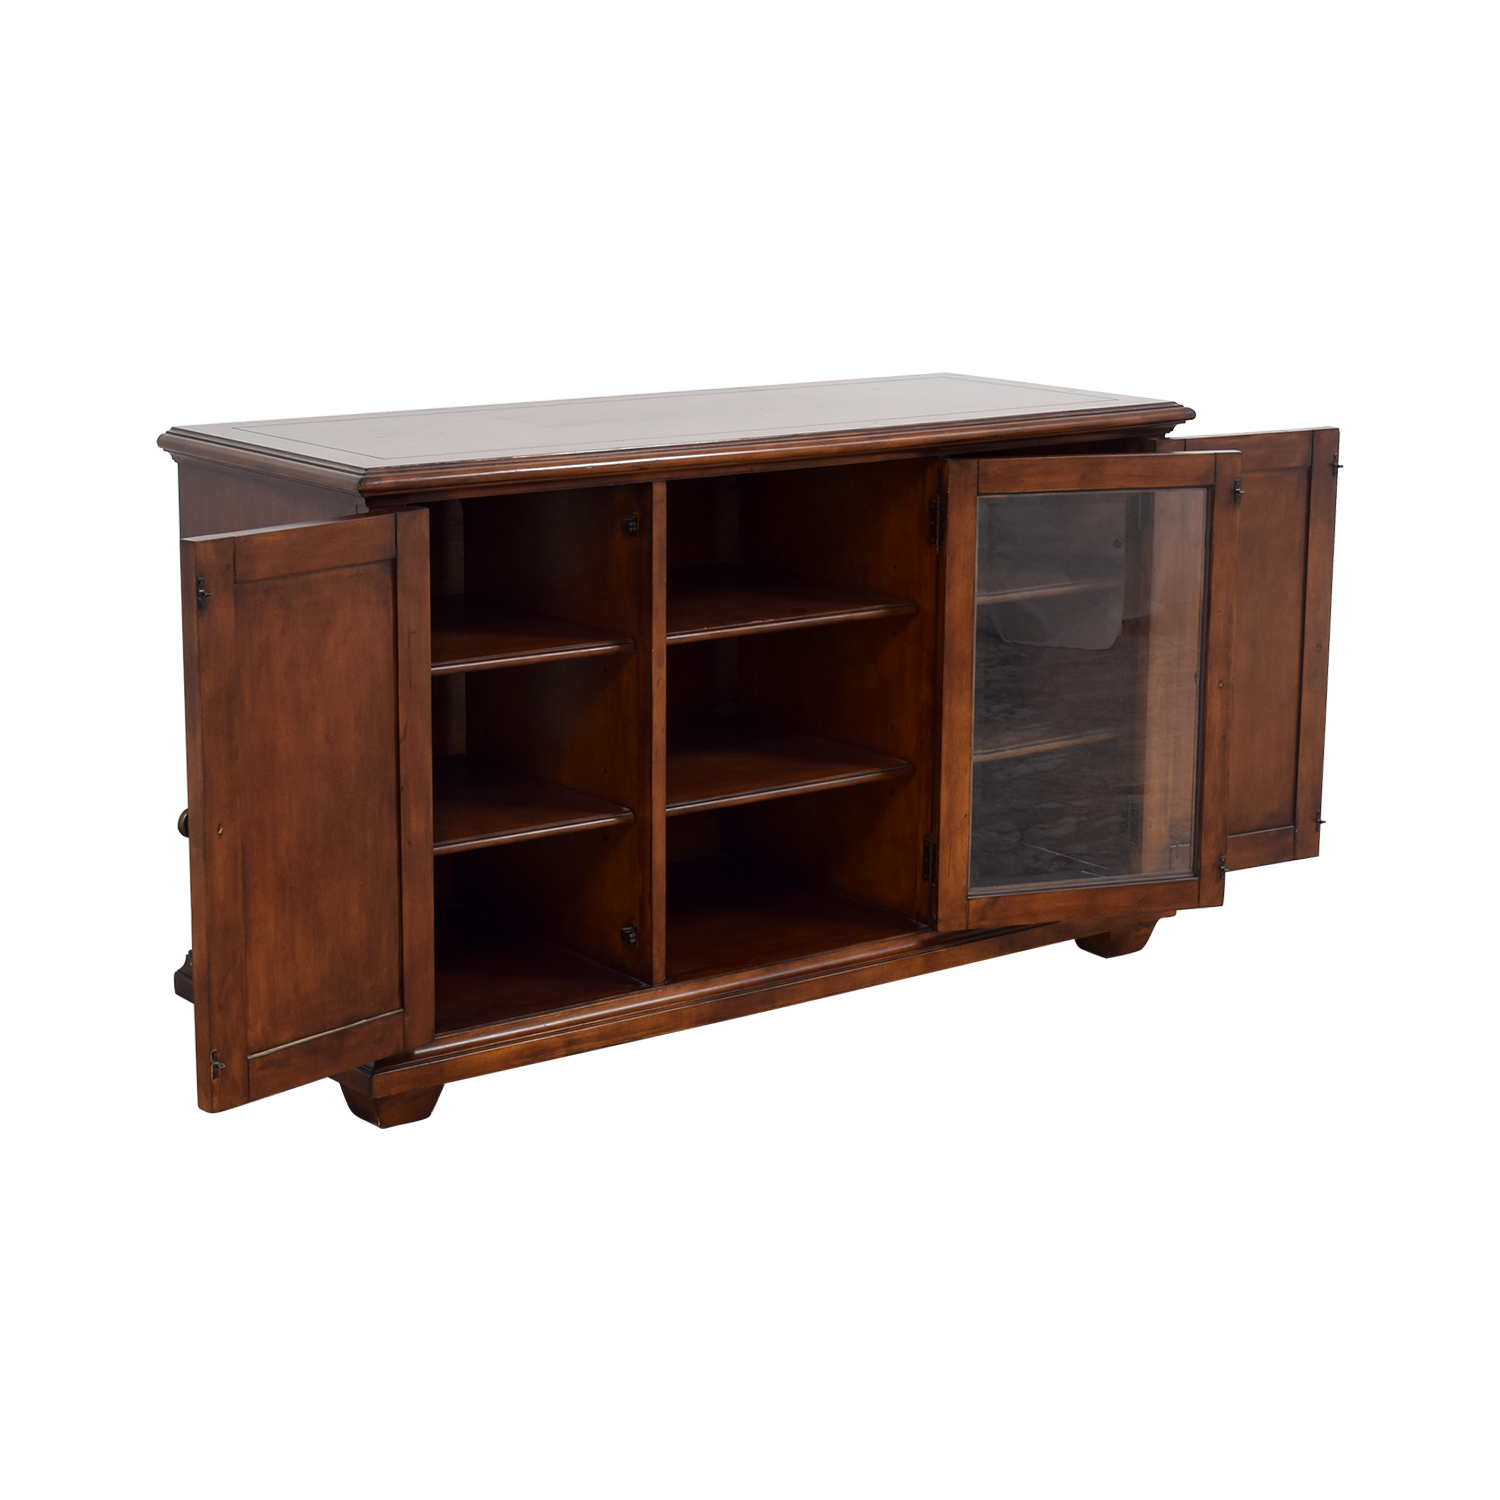 shop Hooker Furniture Media Console with Brass in Distressed Wood Finish Hooker Furniture Media Units